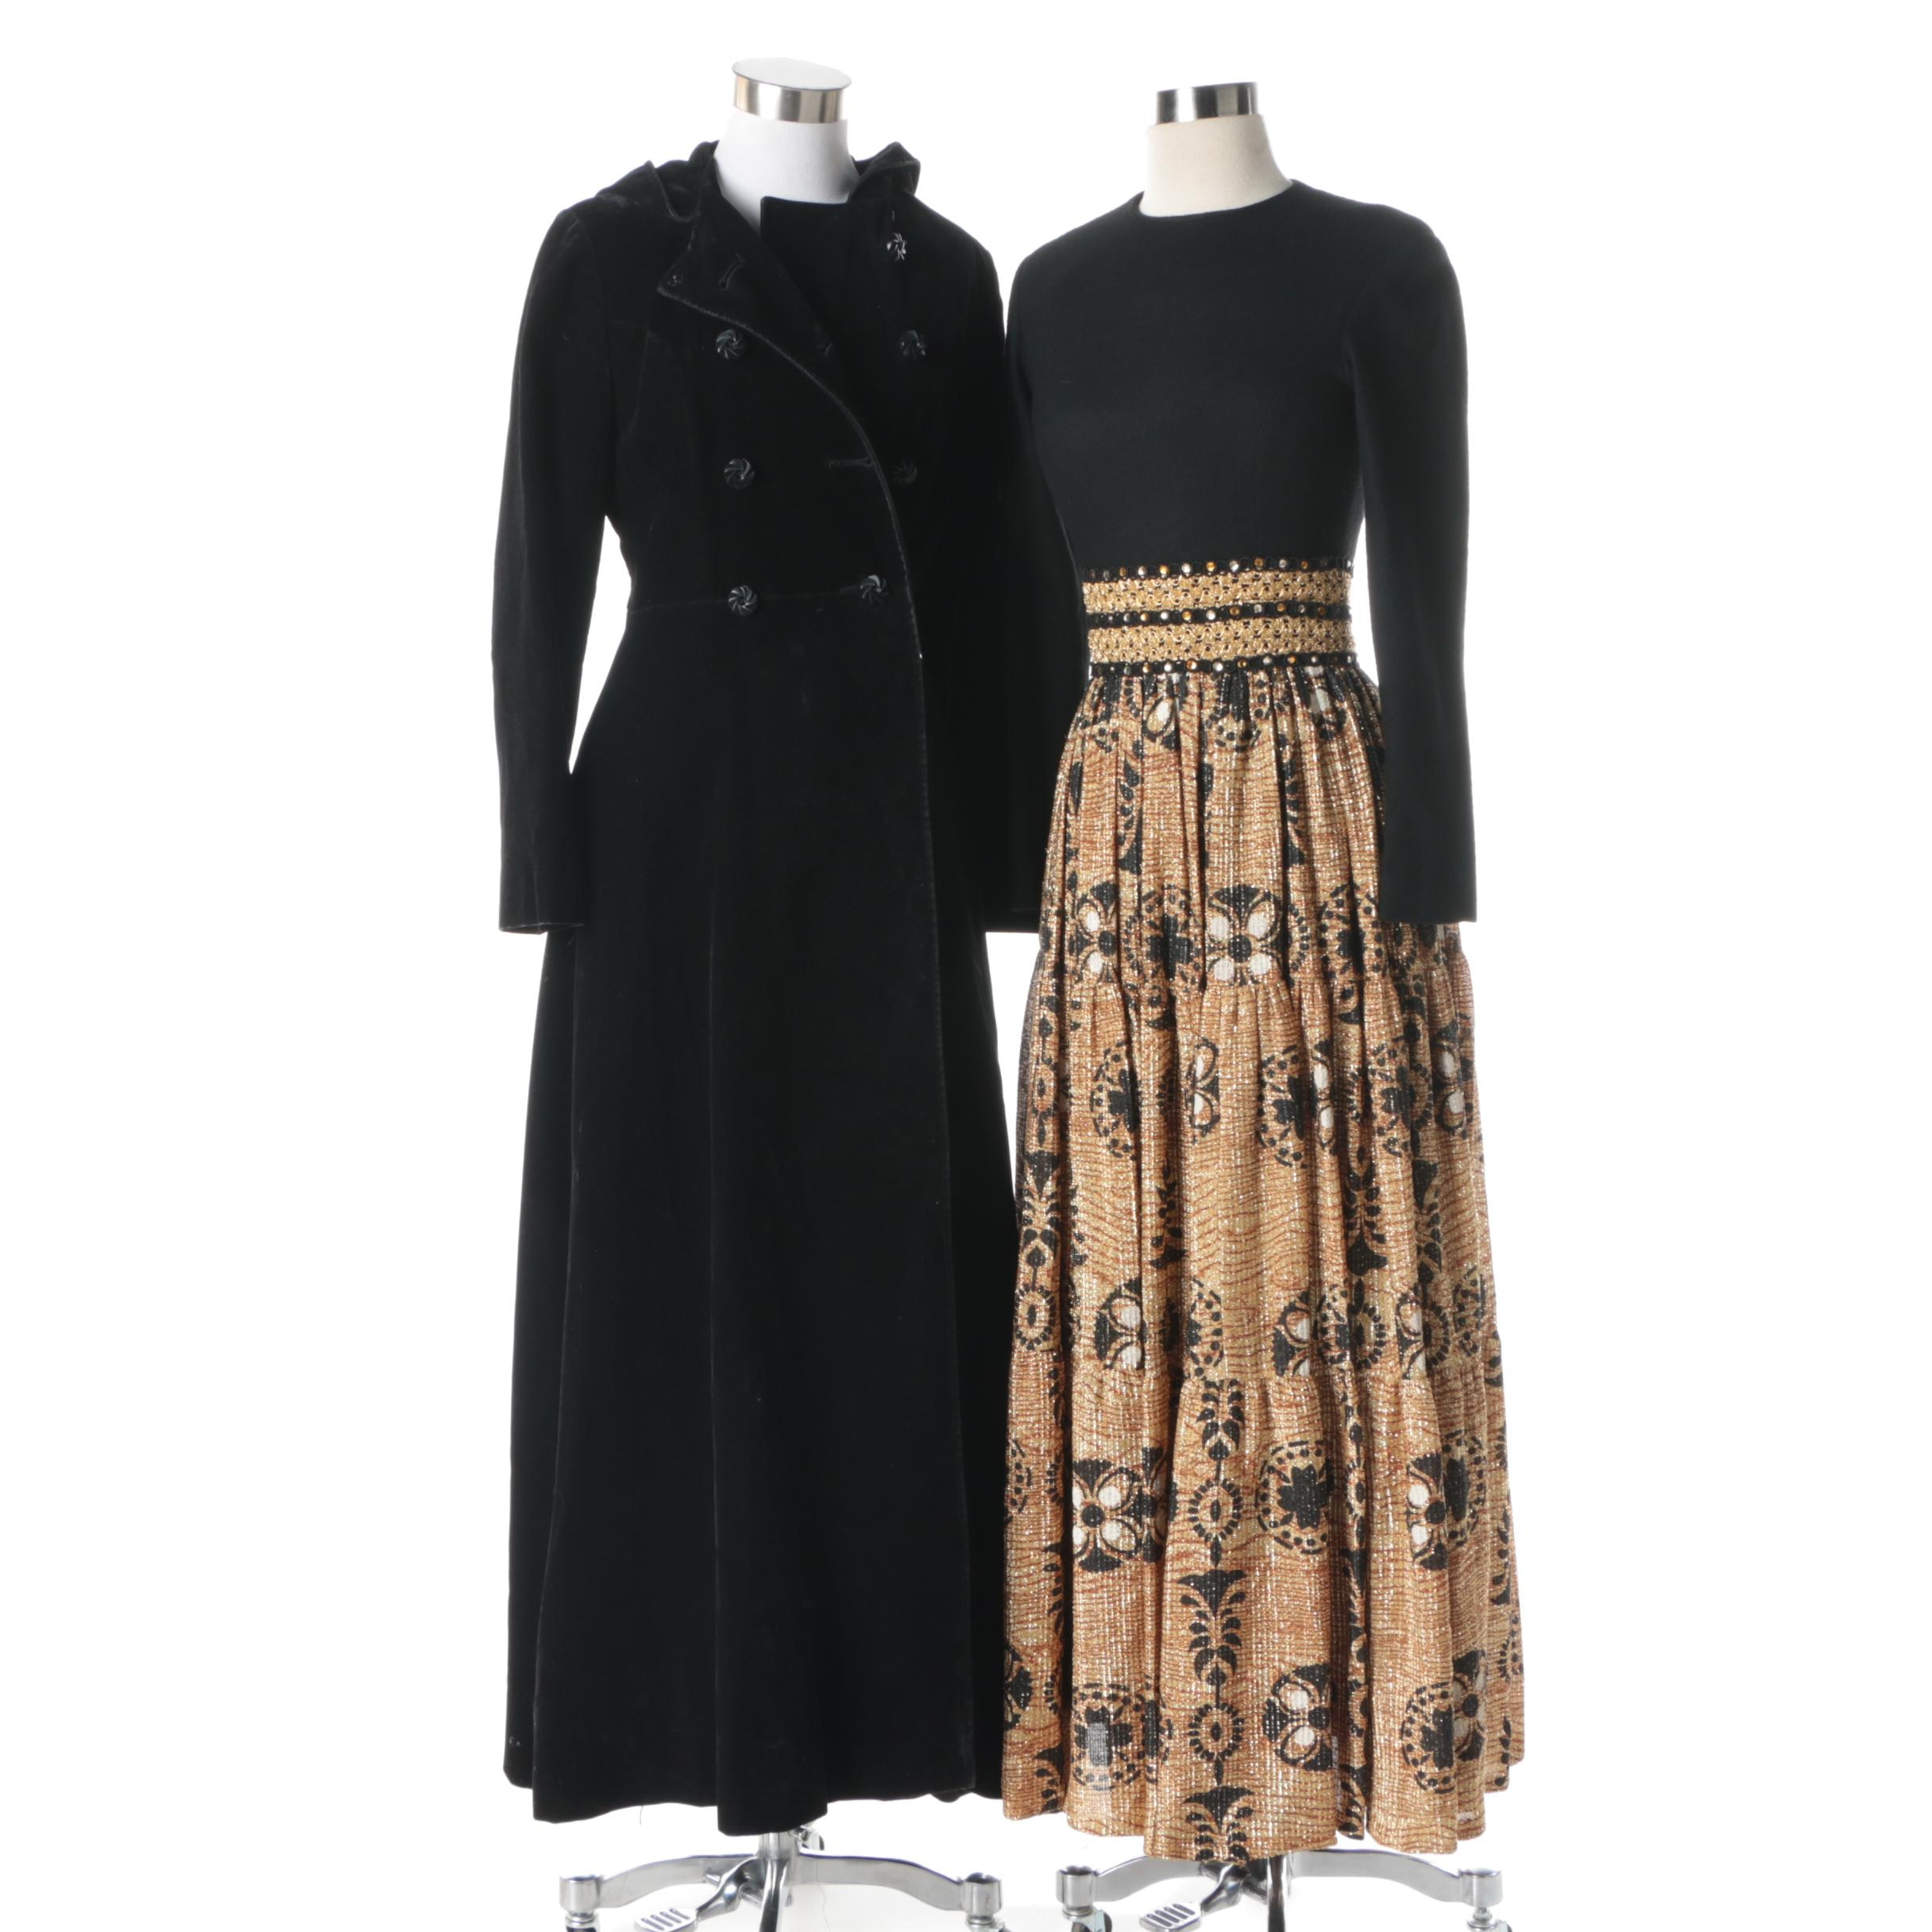 Vintage Black Velvet Hooded Full-Length Coat and Metallic Gold Maxi Dress